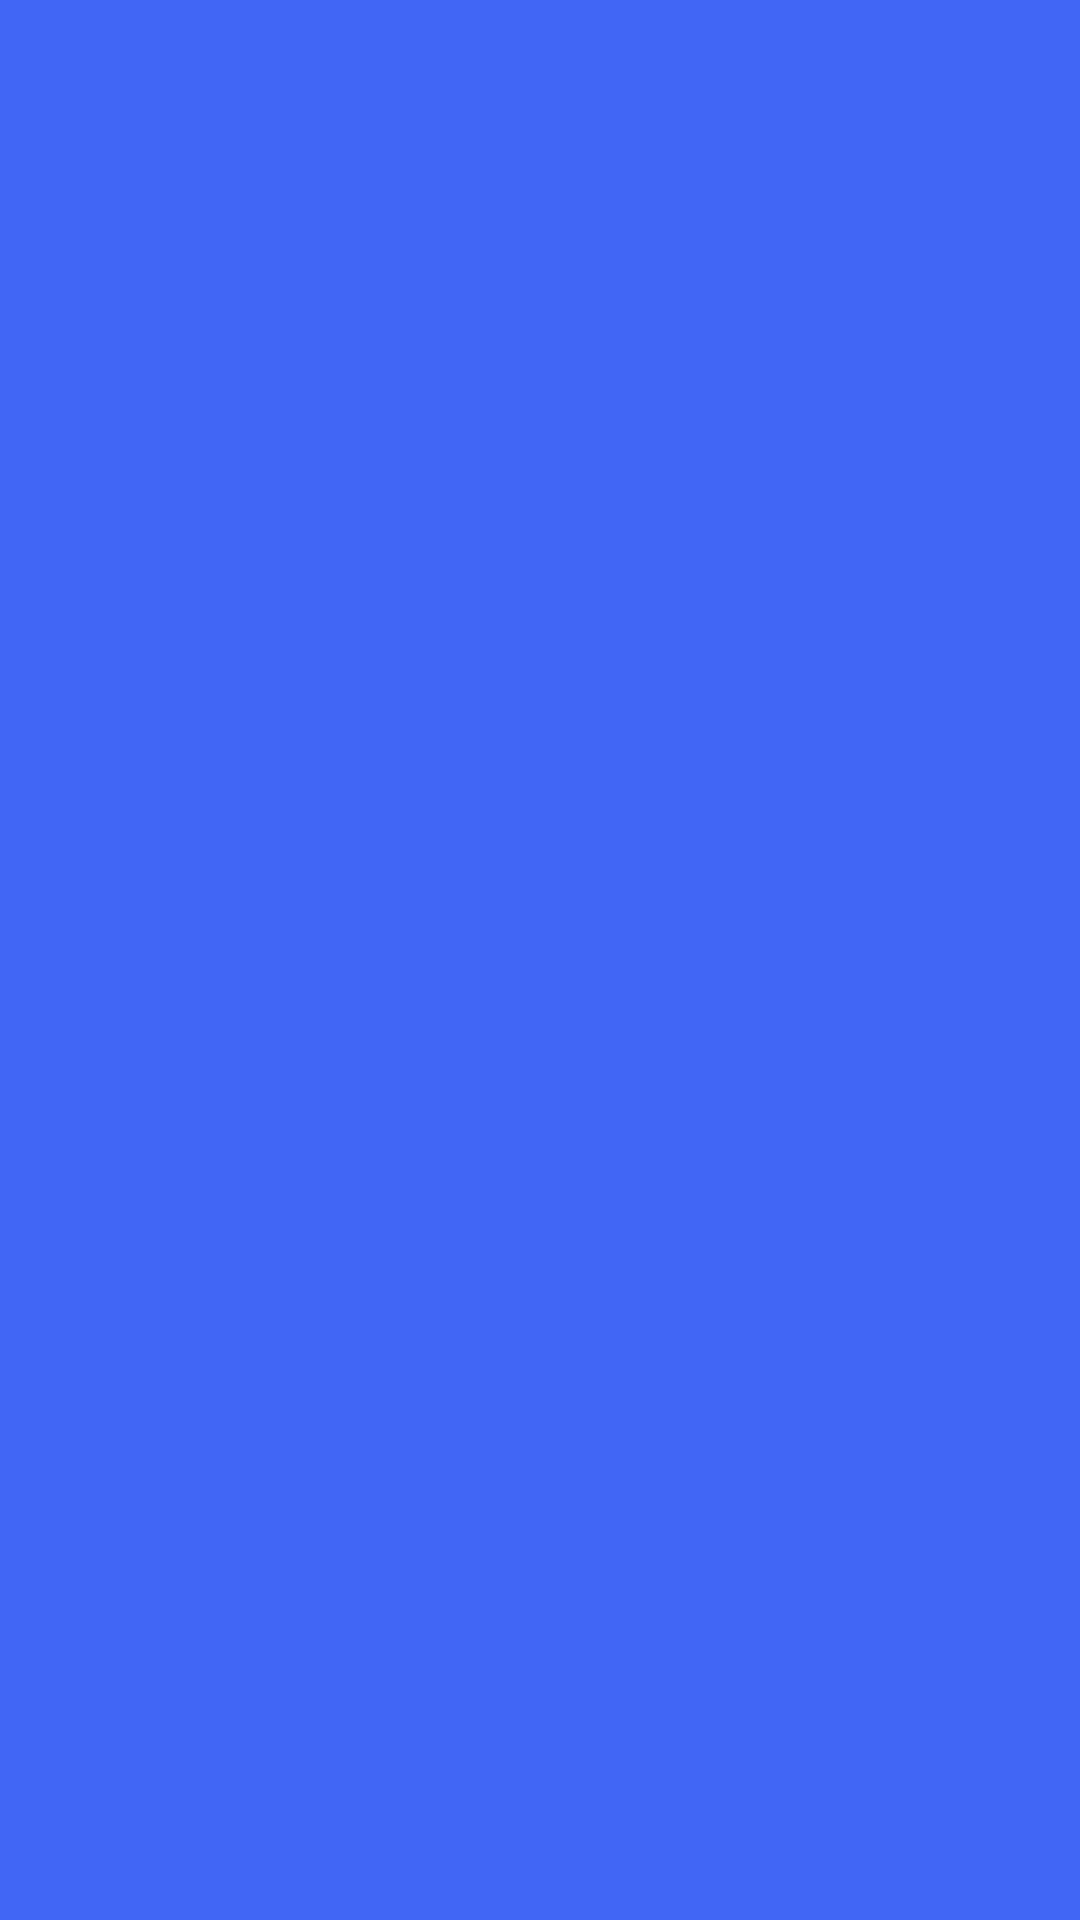 1080x1920 Ultramarine Blue Solid Color Background